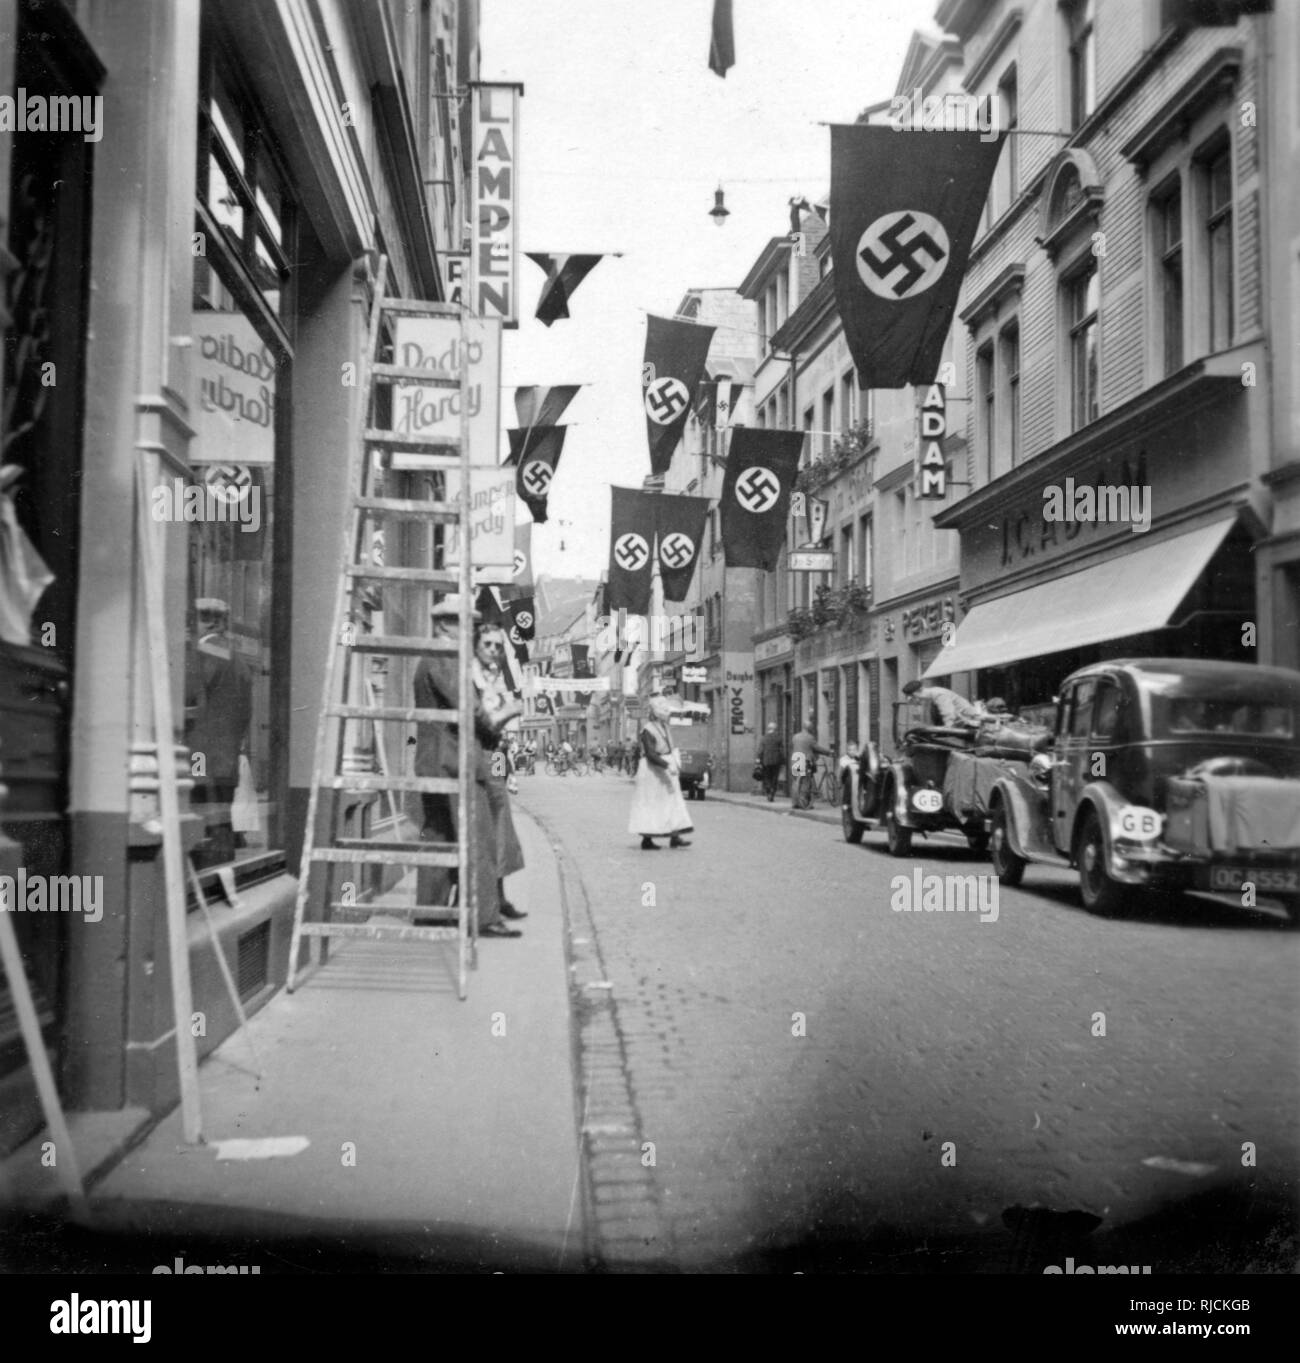 Typical street in Bonn-am-Rhein, Germany, with swastika flags on display. - Stock Image